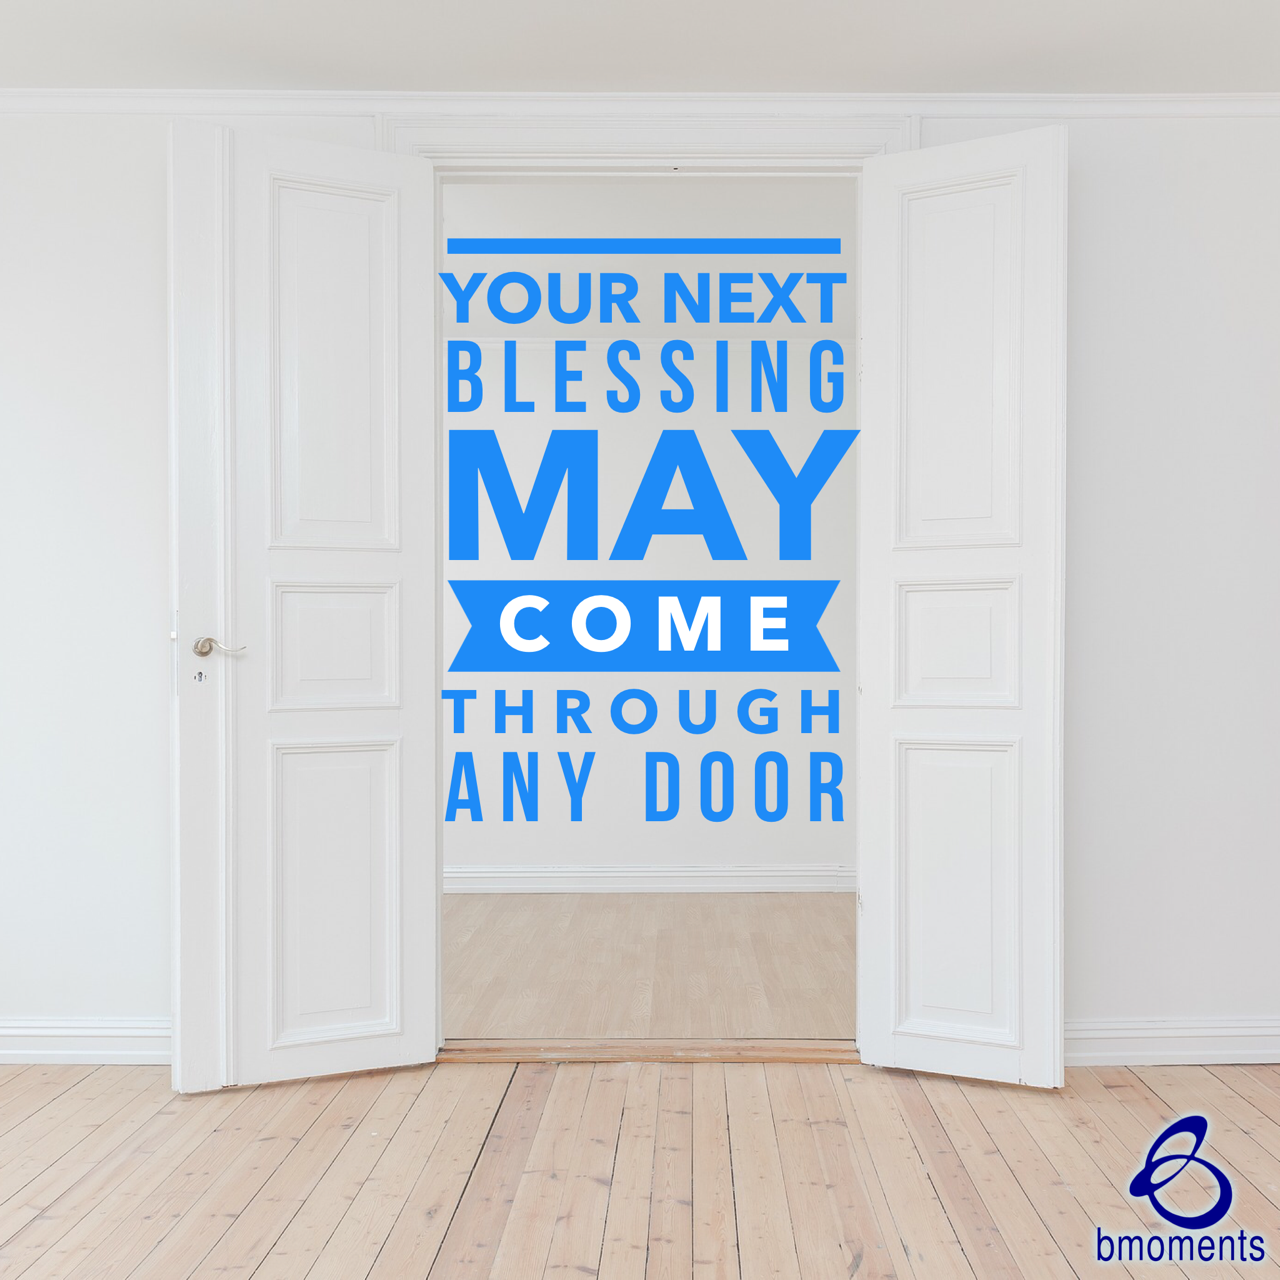 Your Next Blessing May Come through Any Door